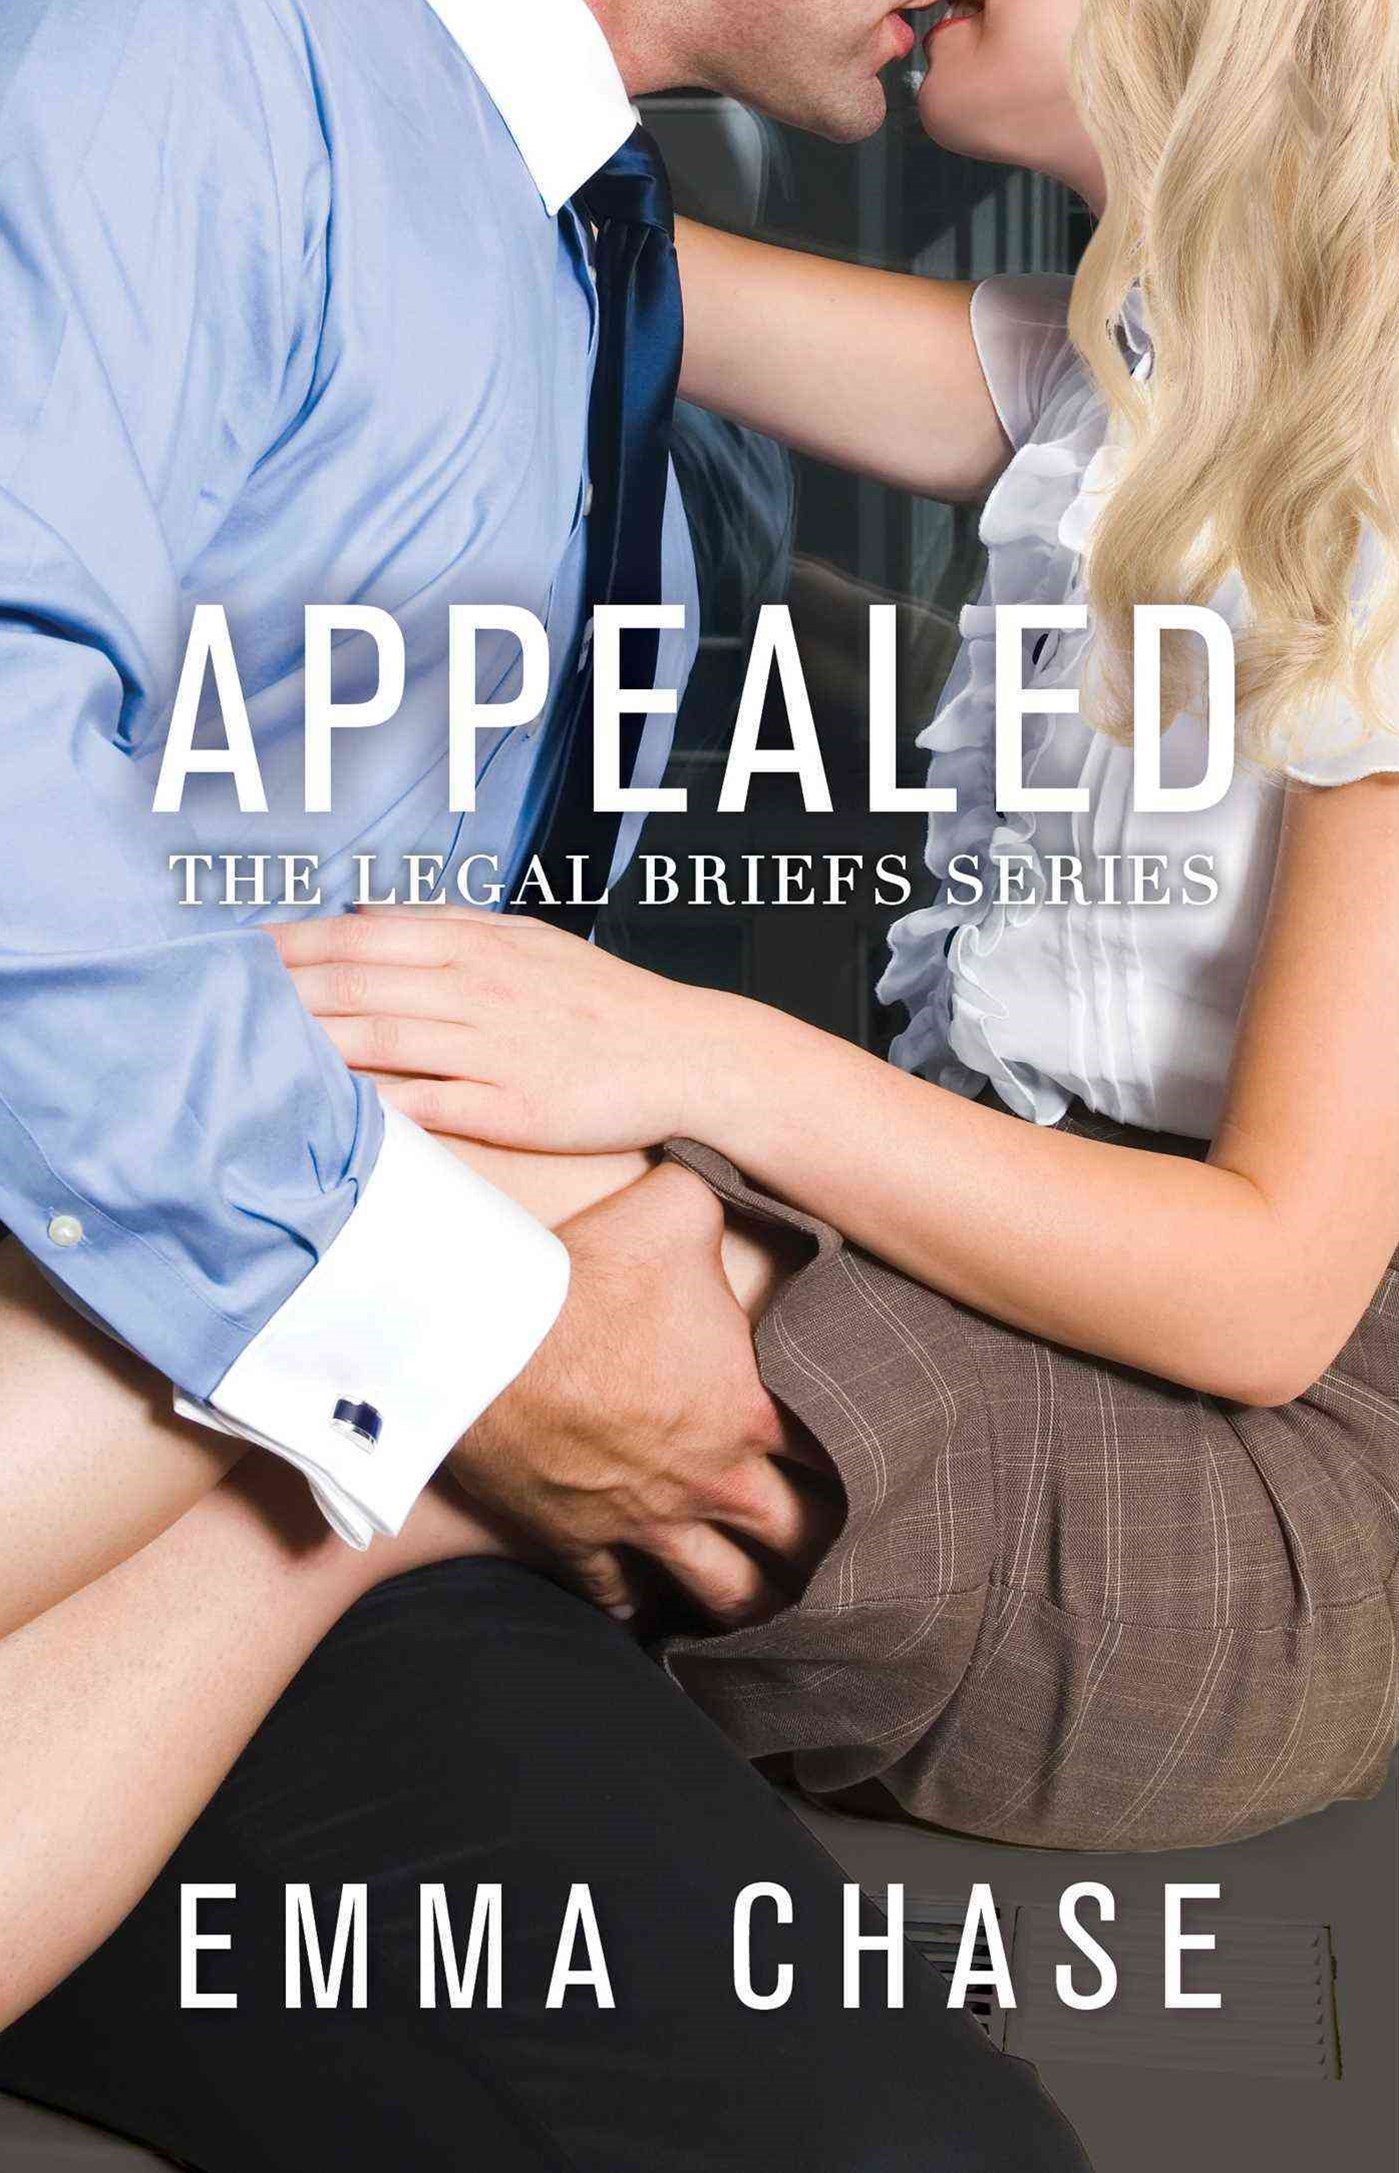 The Legal Briefs Series: Appealed